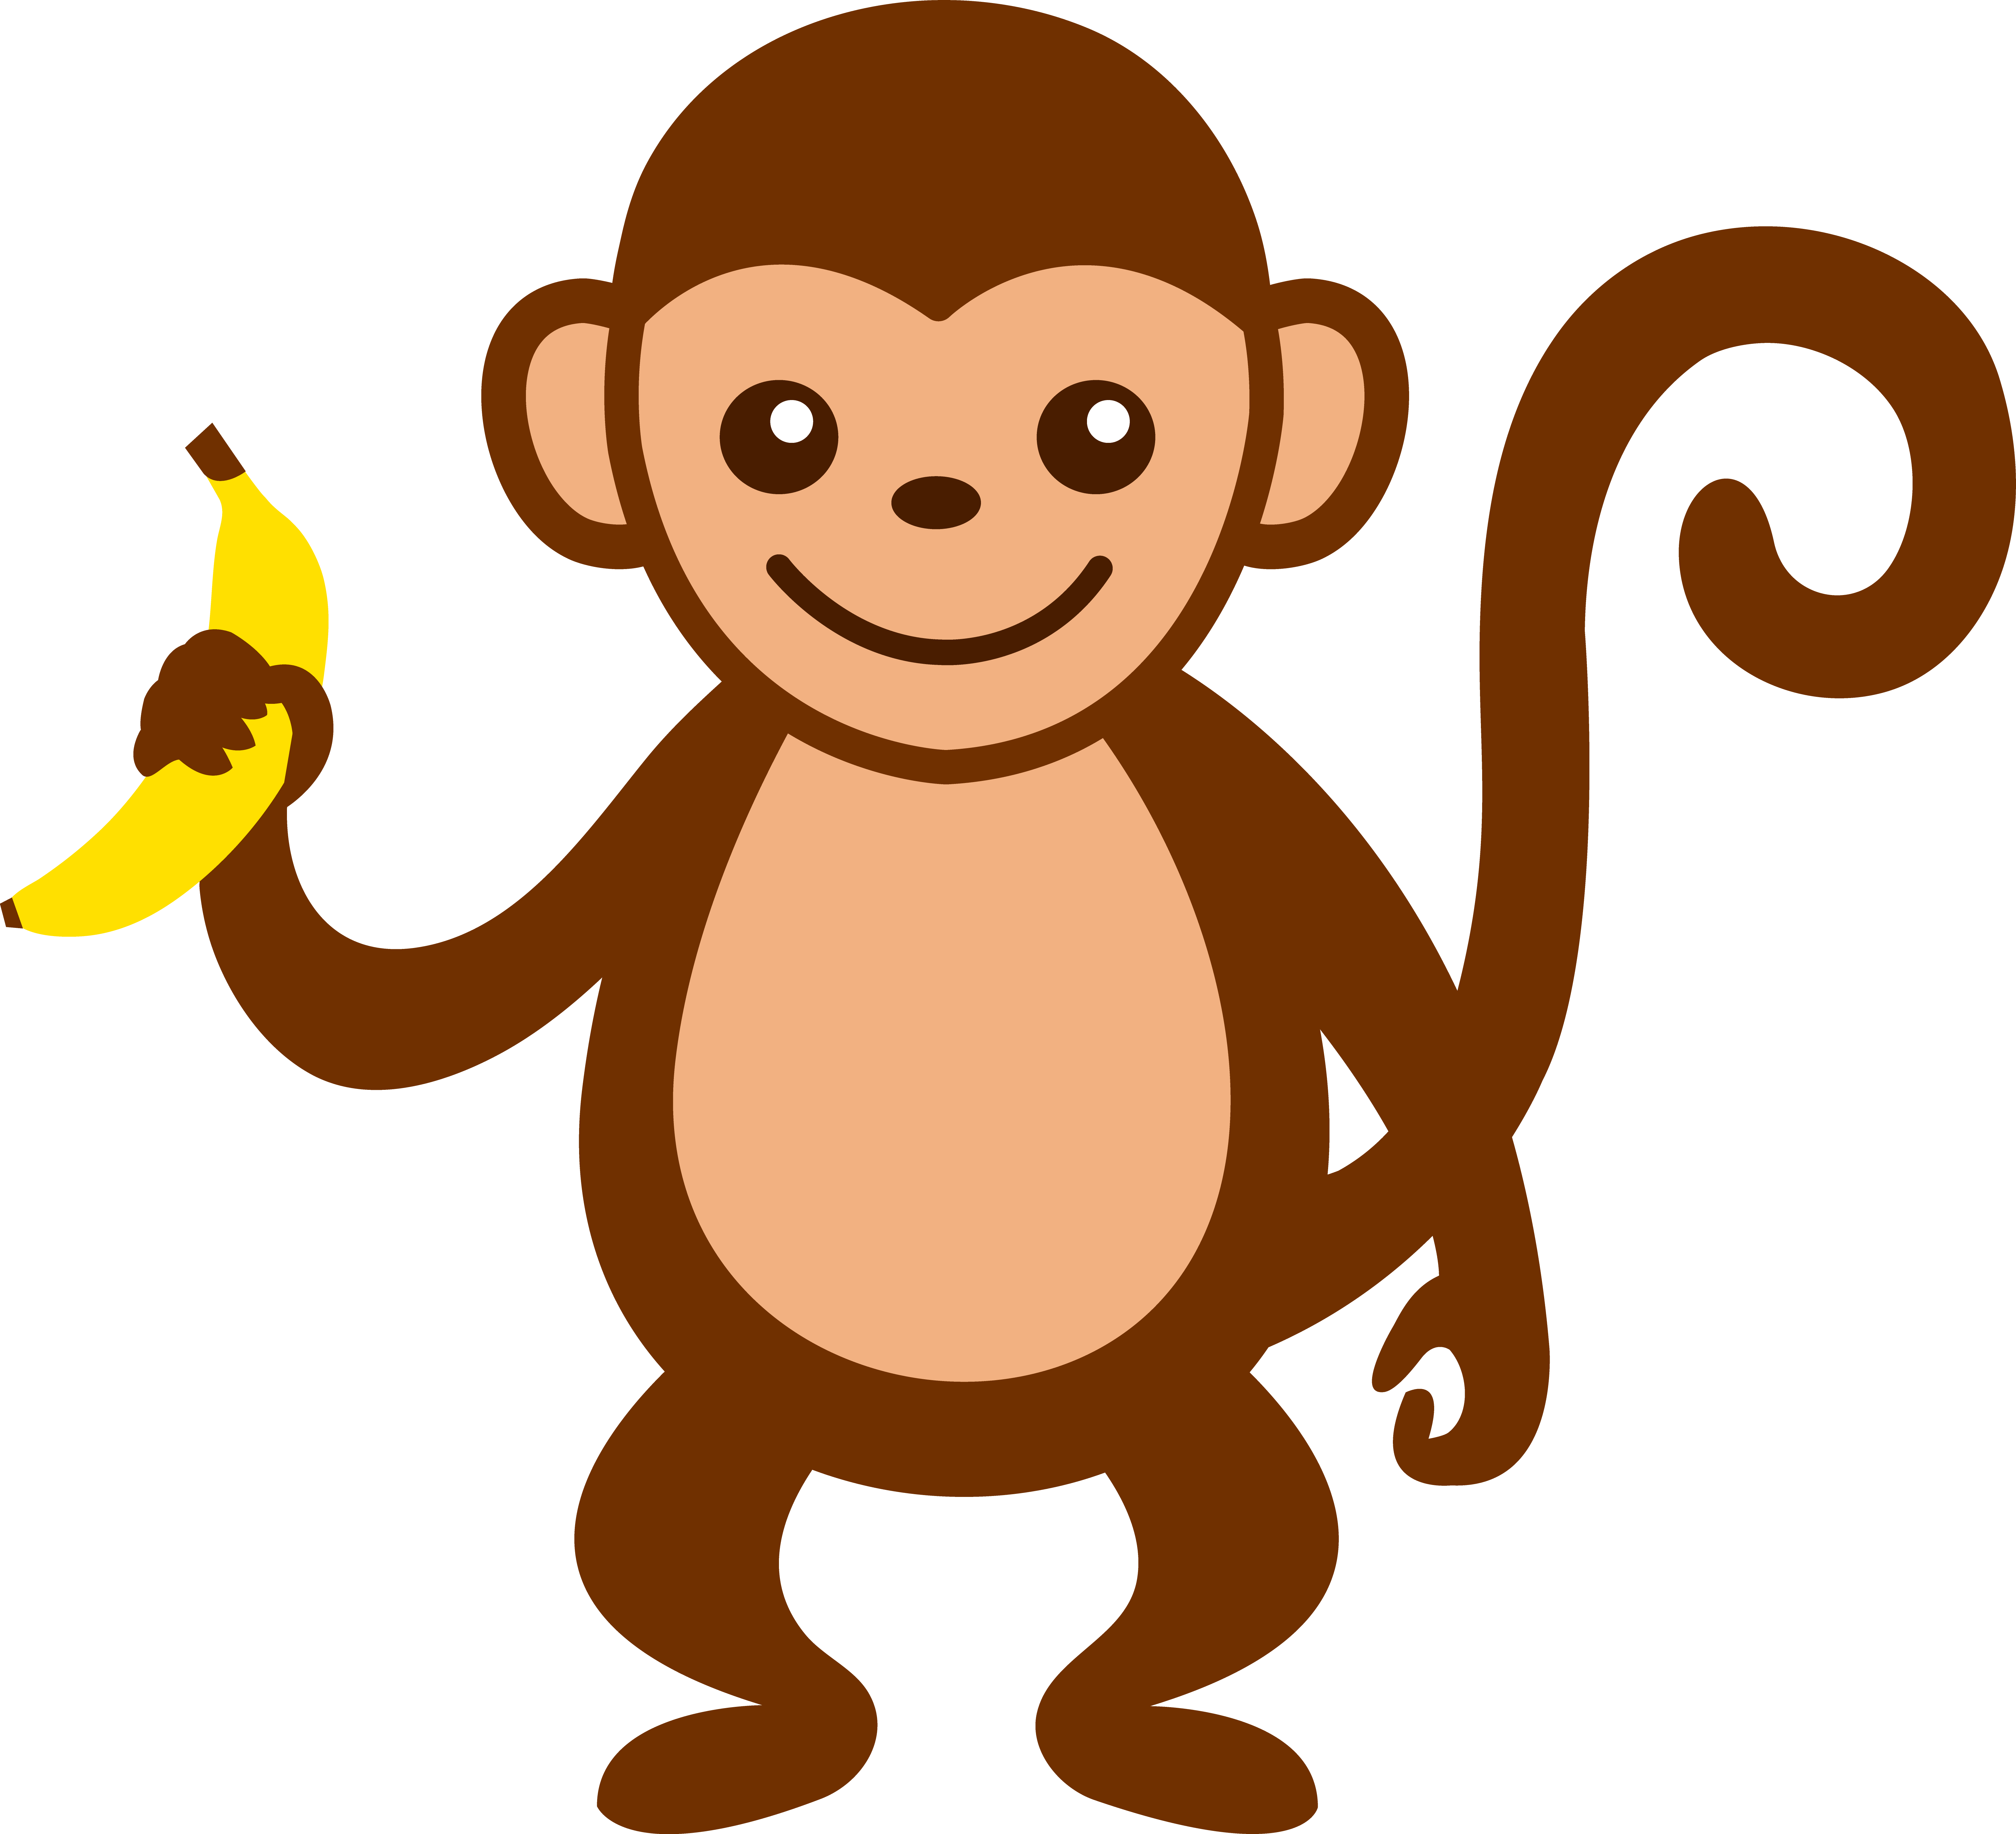 How To Draw A Monkey Eating A Banana - Cliparts.co